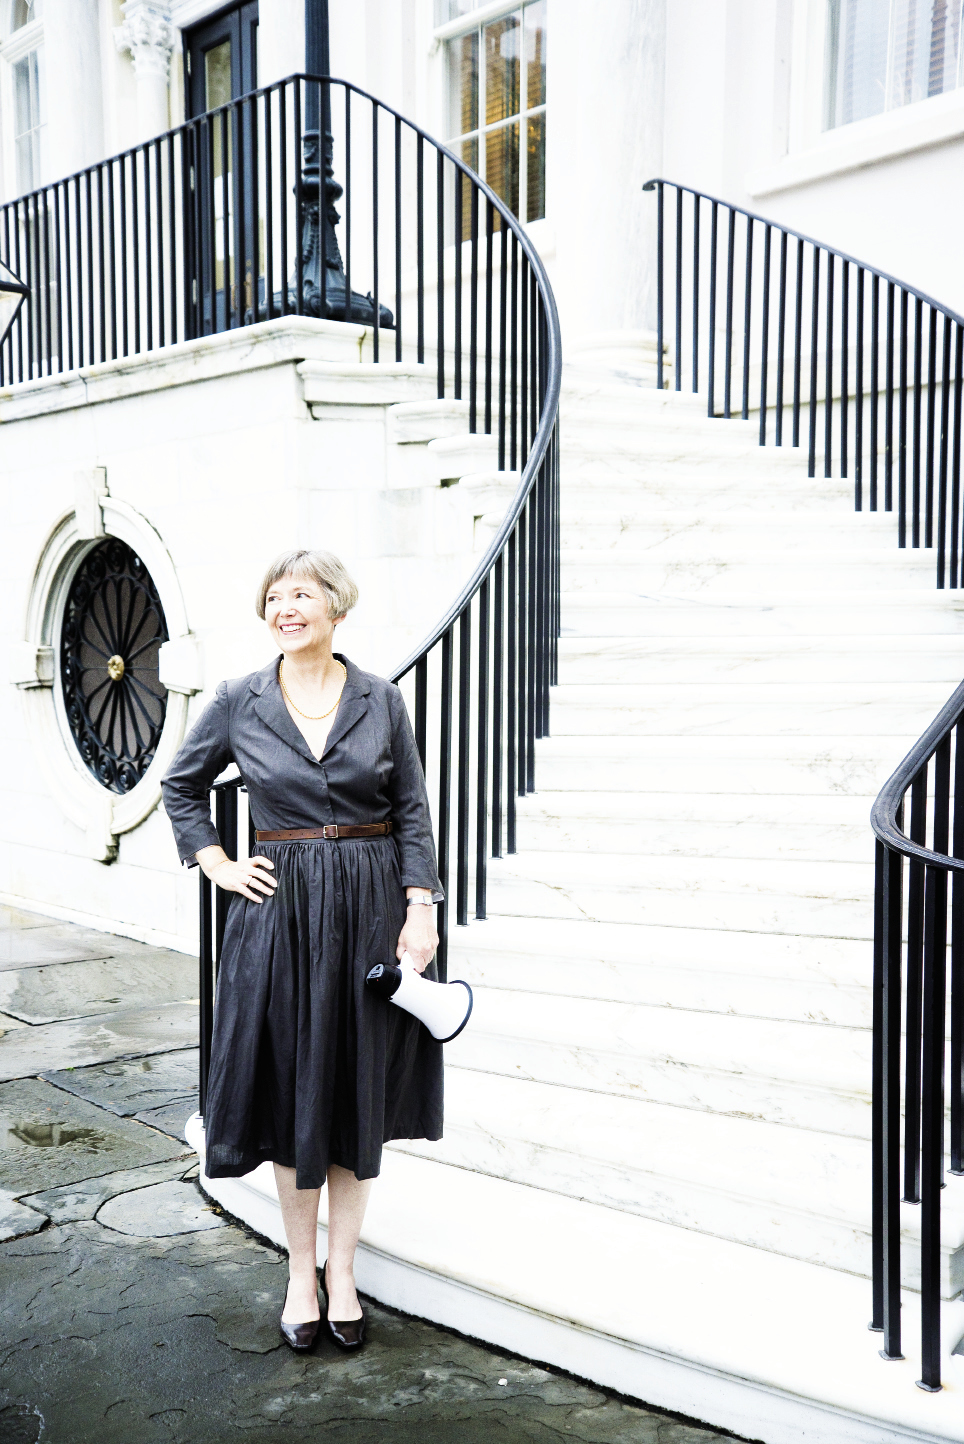 Architect and advocate Whitney Powers